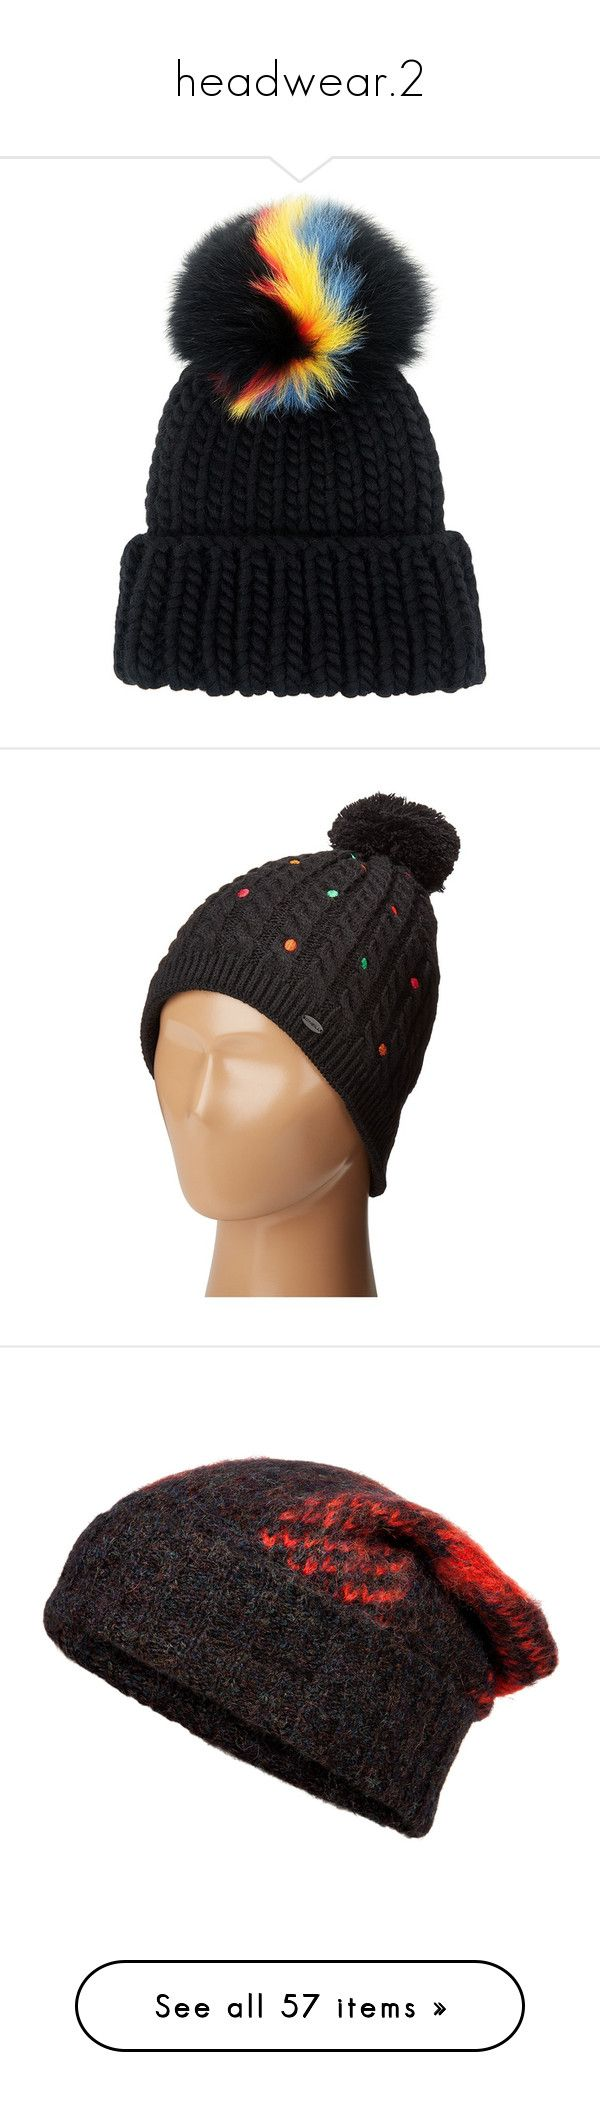 """headwear.2"" by theclocker ❤ liked on Polyvore featuring accessories, hats, beanie, beanie hats, cable knit hat, fur pom-pom hats, fur pom pom hat, fur pom pom beanie, cable hat and pom pom hat"